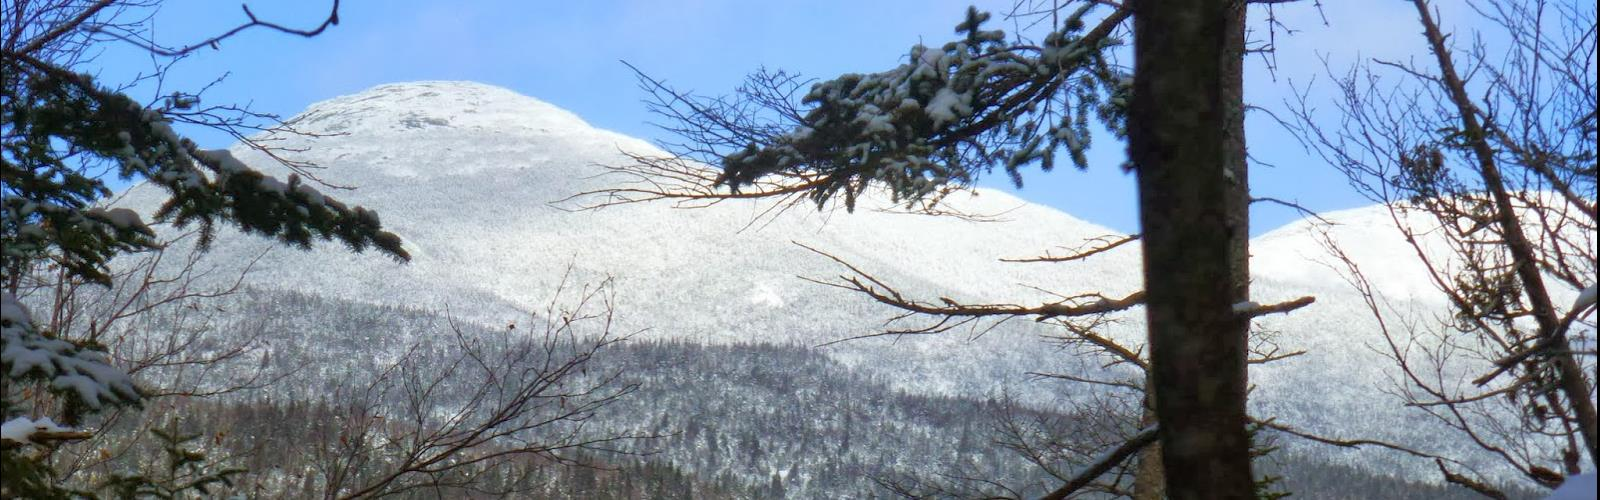 Calamity Mountain, New York - Hiking  tree outdoor sky snow covered plant winter nature conifer forest wooded hillside day